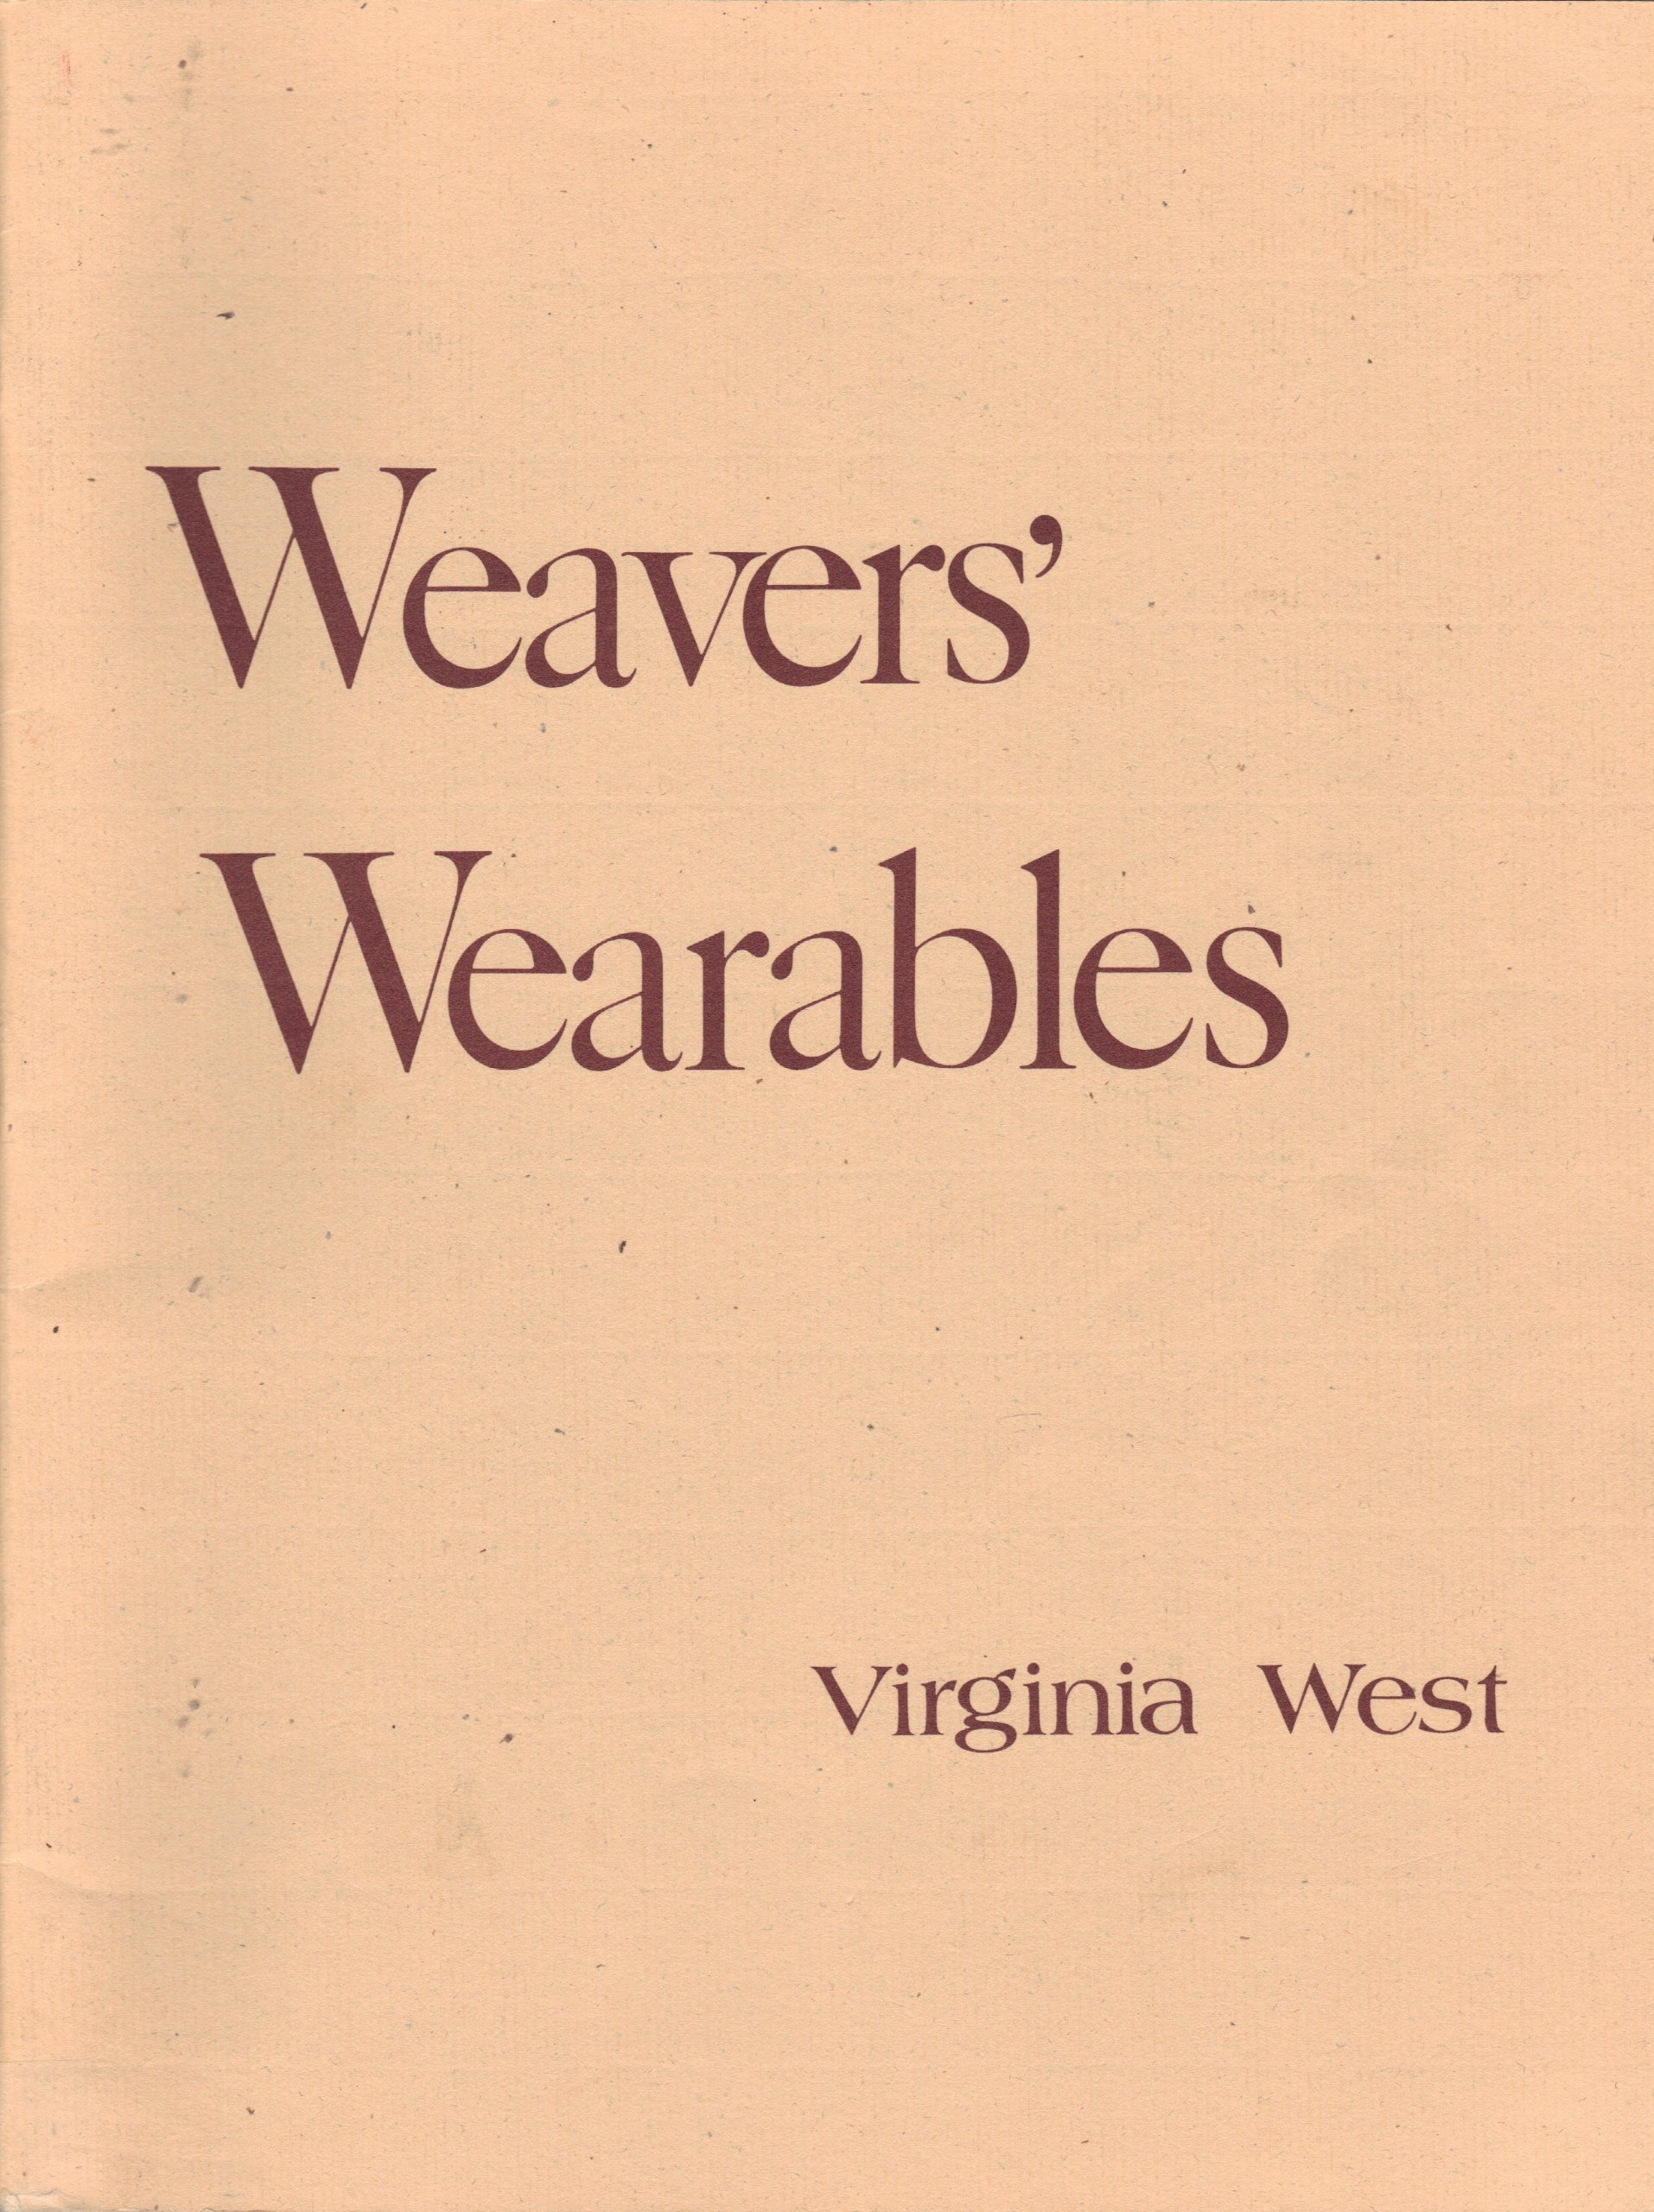 Weaver's Wearables